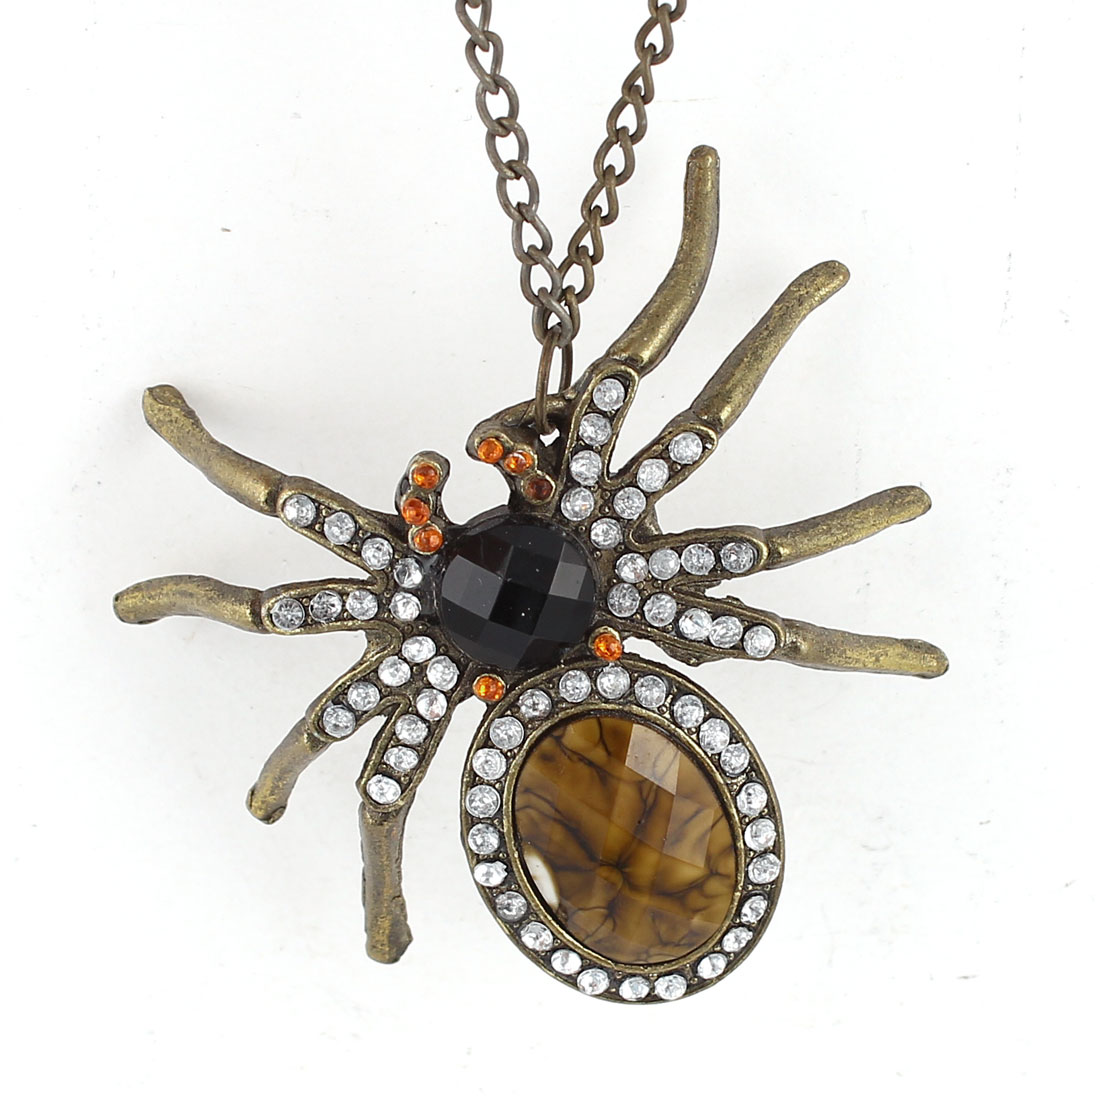 Bronze Tone Glitter Rhinestone Inlaid Spider Design Pendant Chain Dress Sweater Necklace for Lady